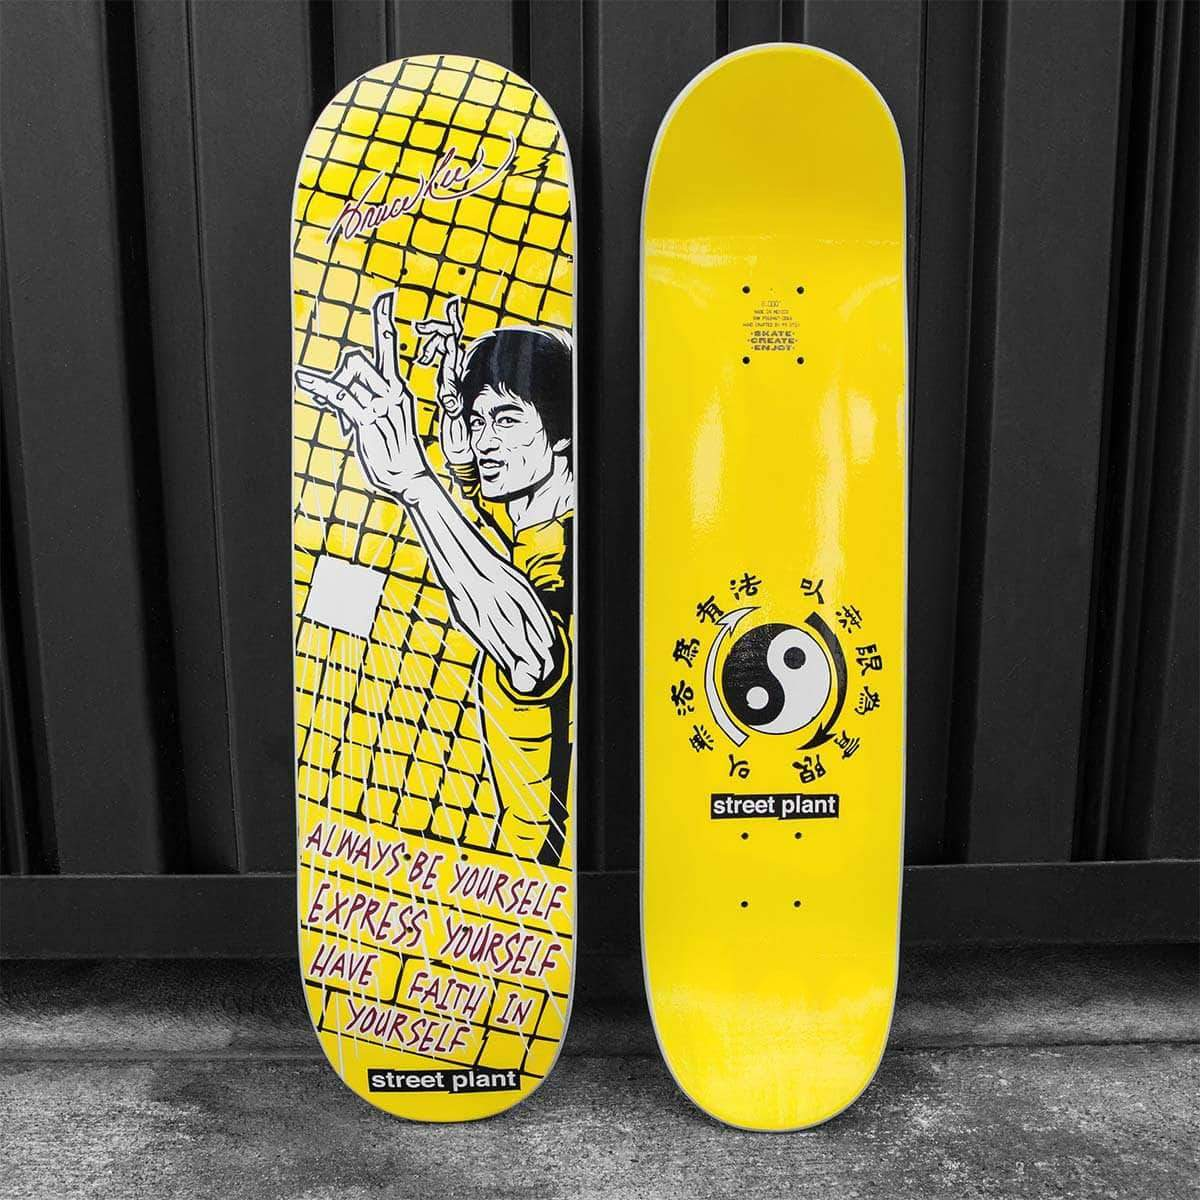 Express Yourself Mike Vallely Skate Deck